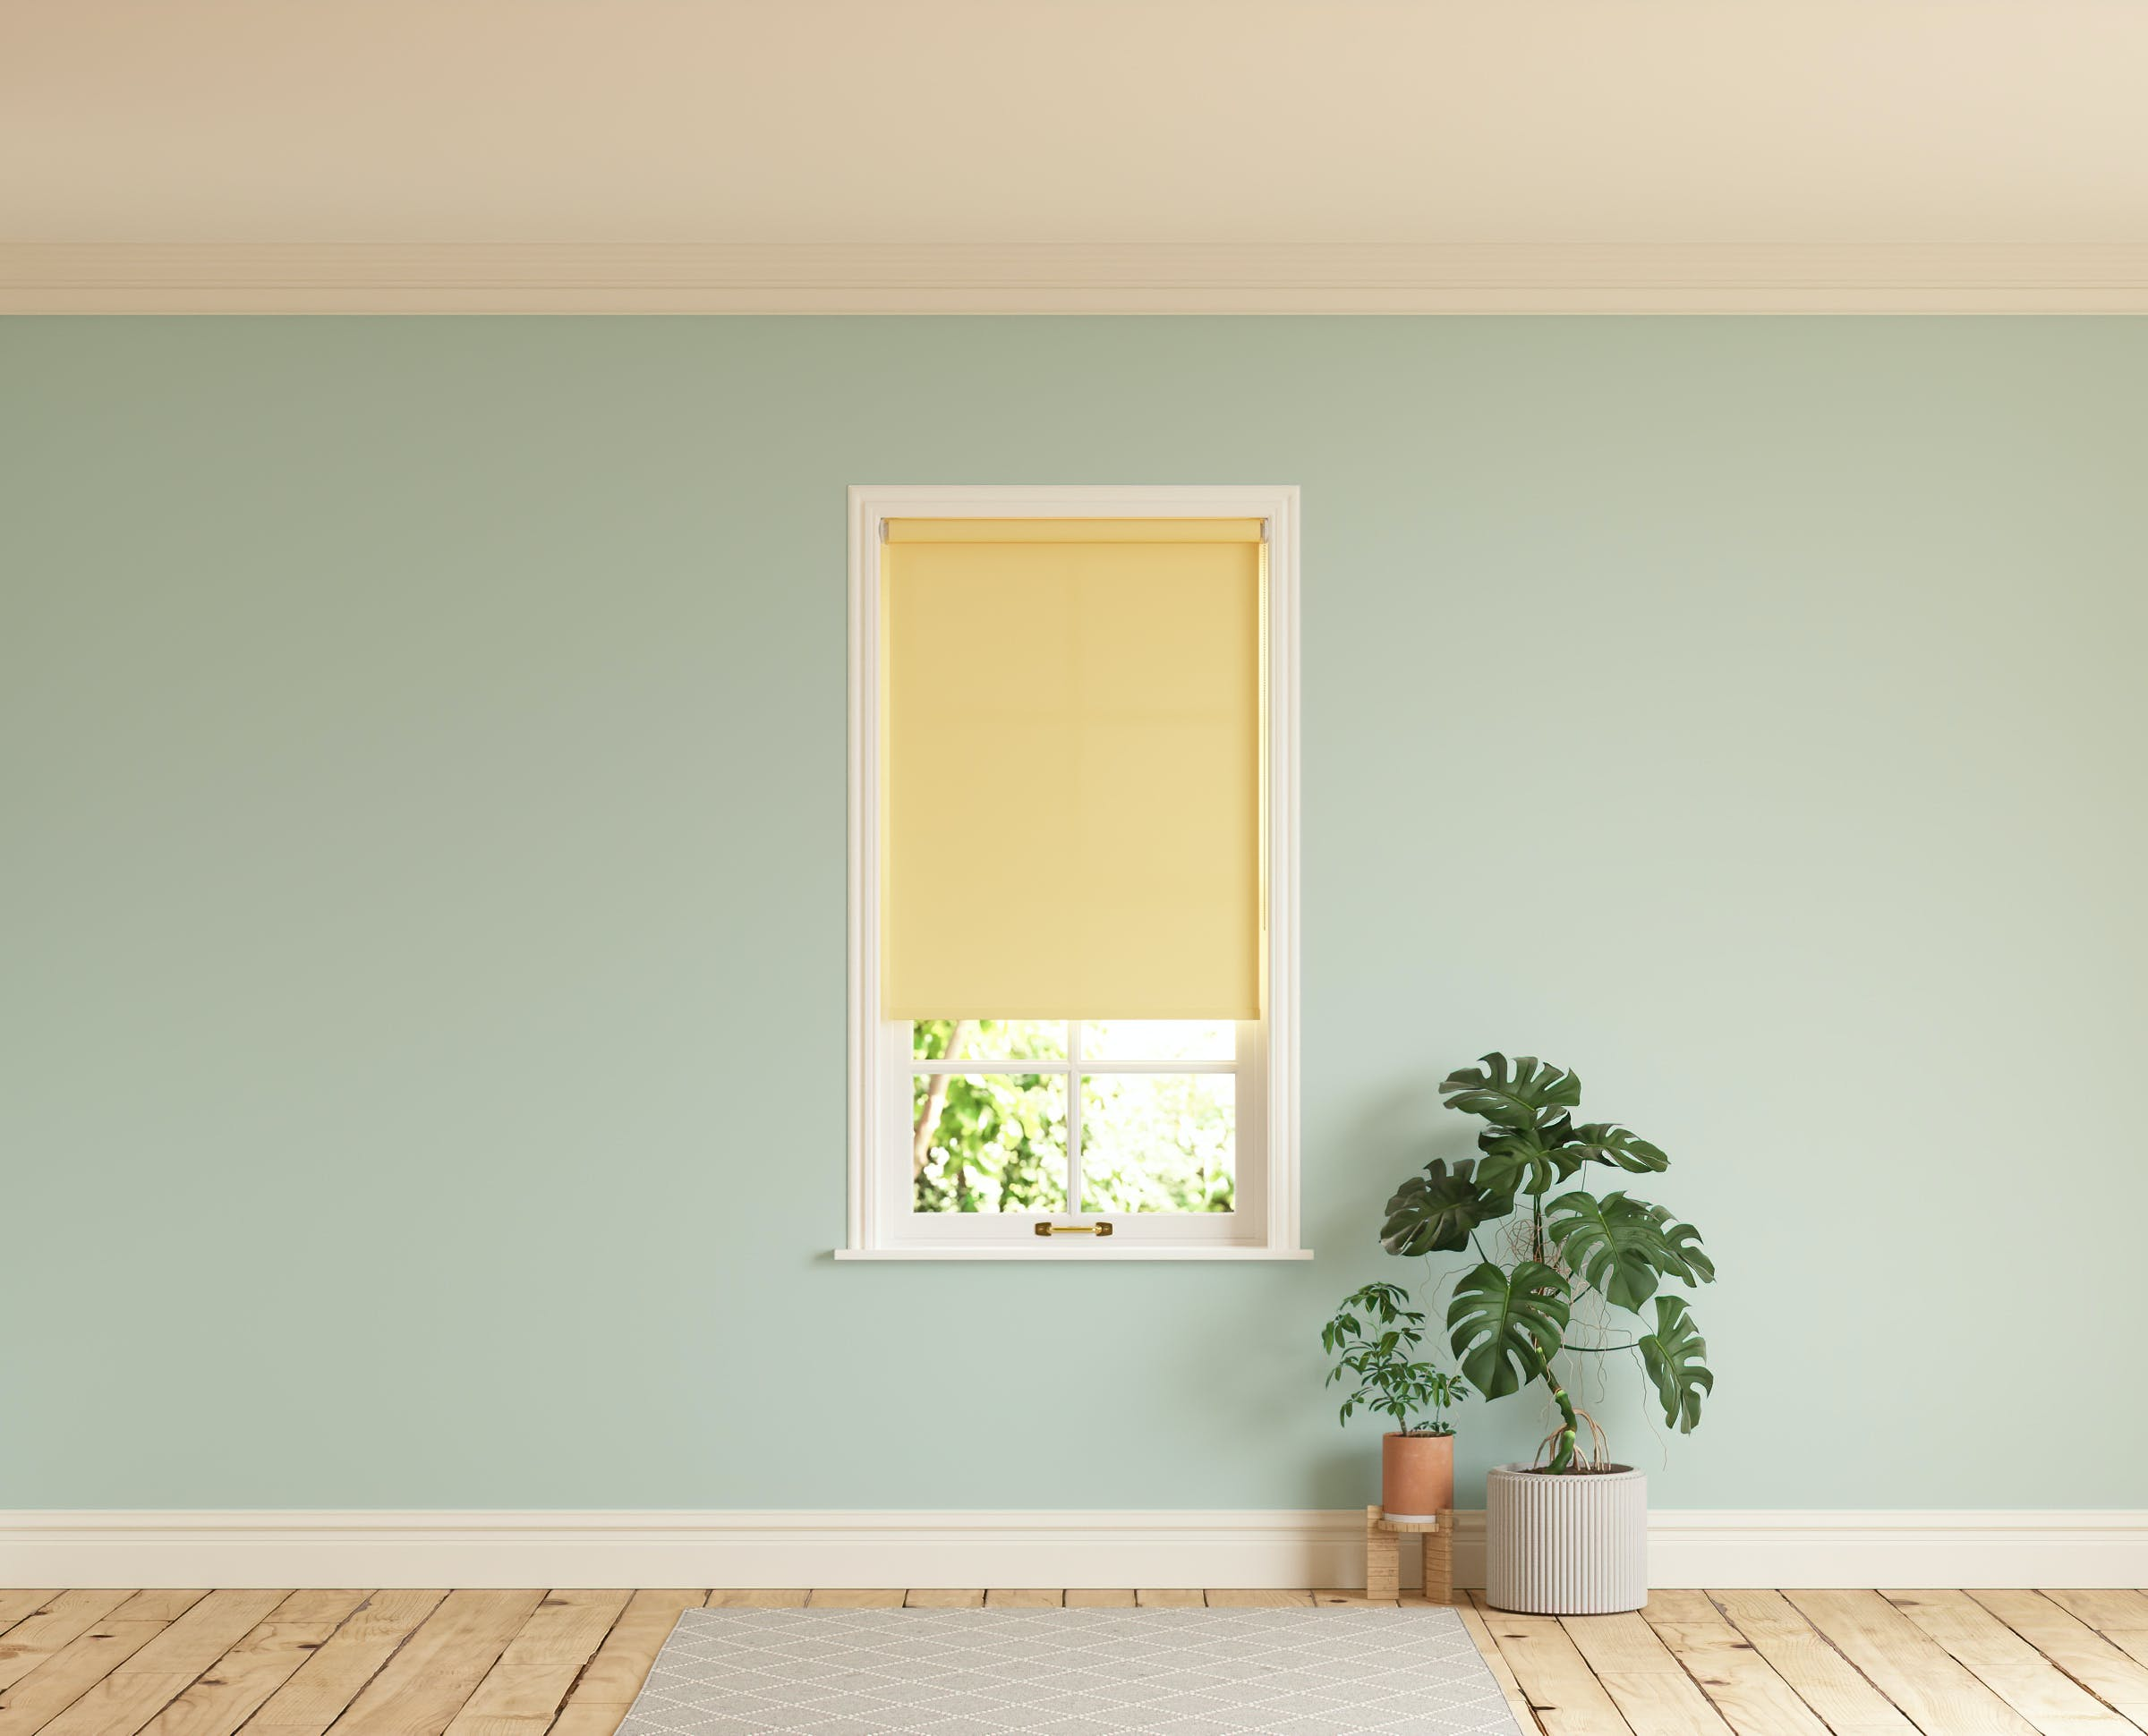 Room with walls painted in Lick Blue 03 and Yellow 01 roller blinds